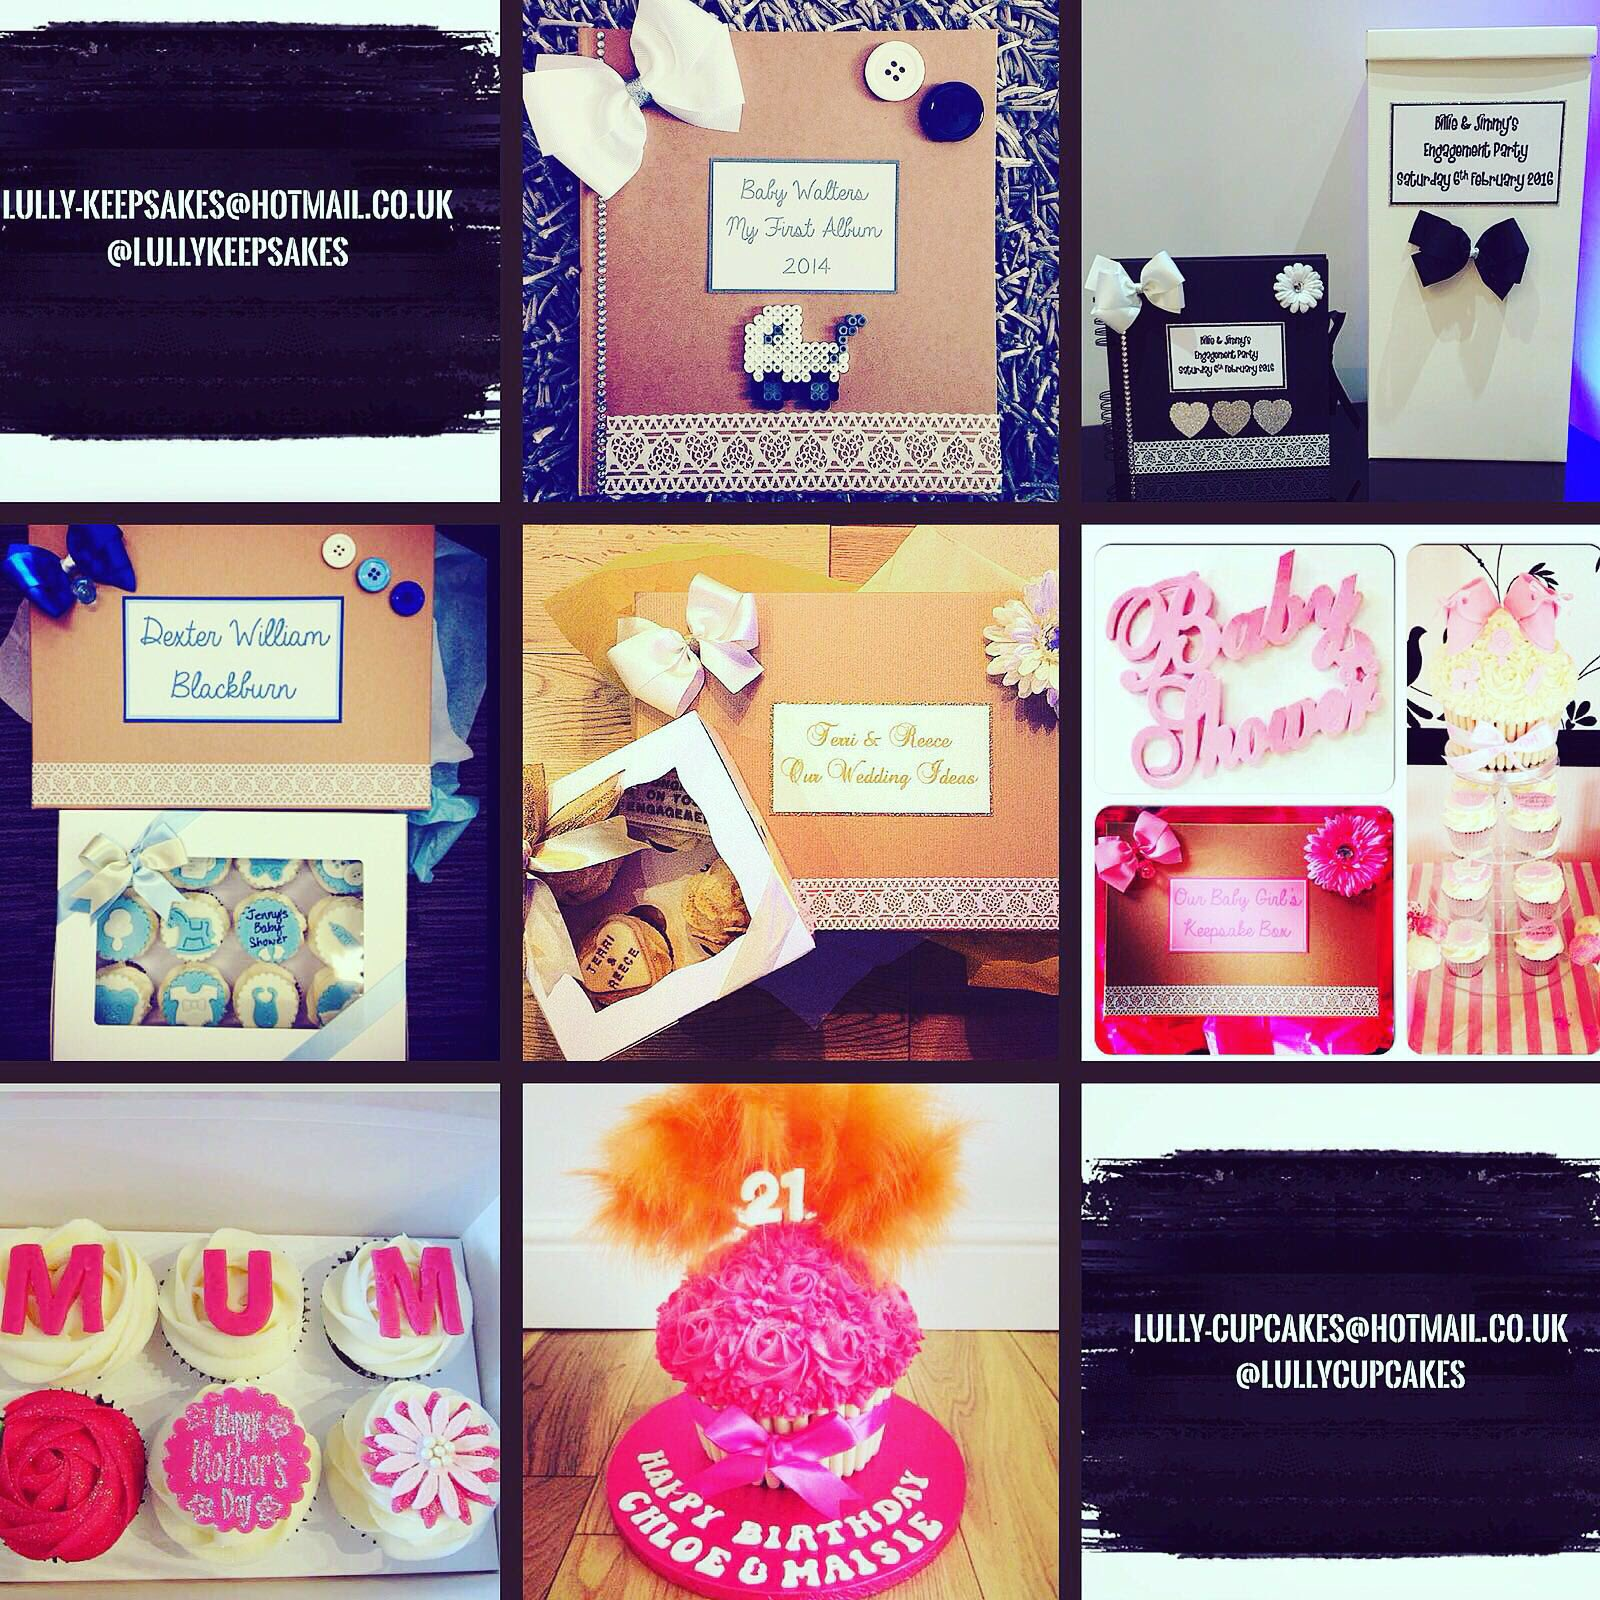 Everyone get following @lullykeepsakes and @lullycupcakes my fav gifts and cupcakes in Essex 💗 https://t.co/yRSjOnBBjv